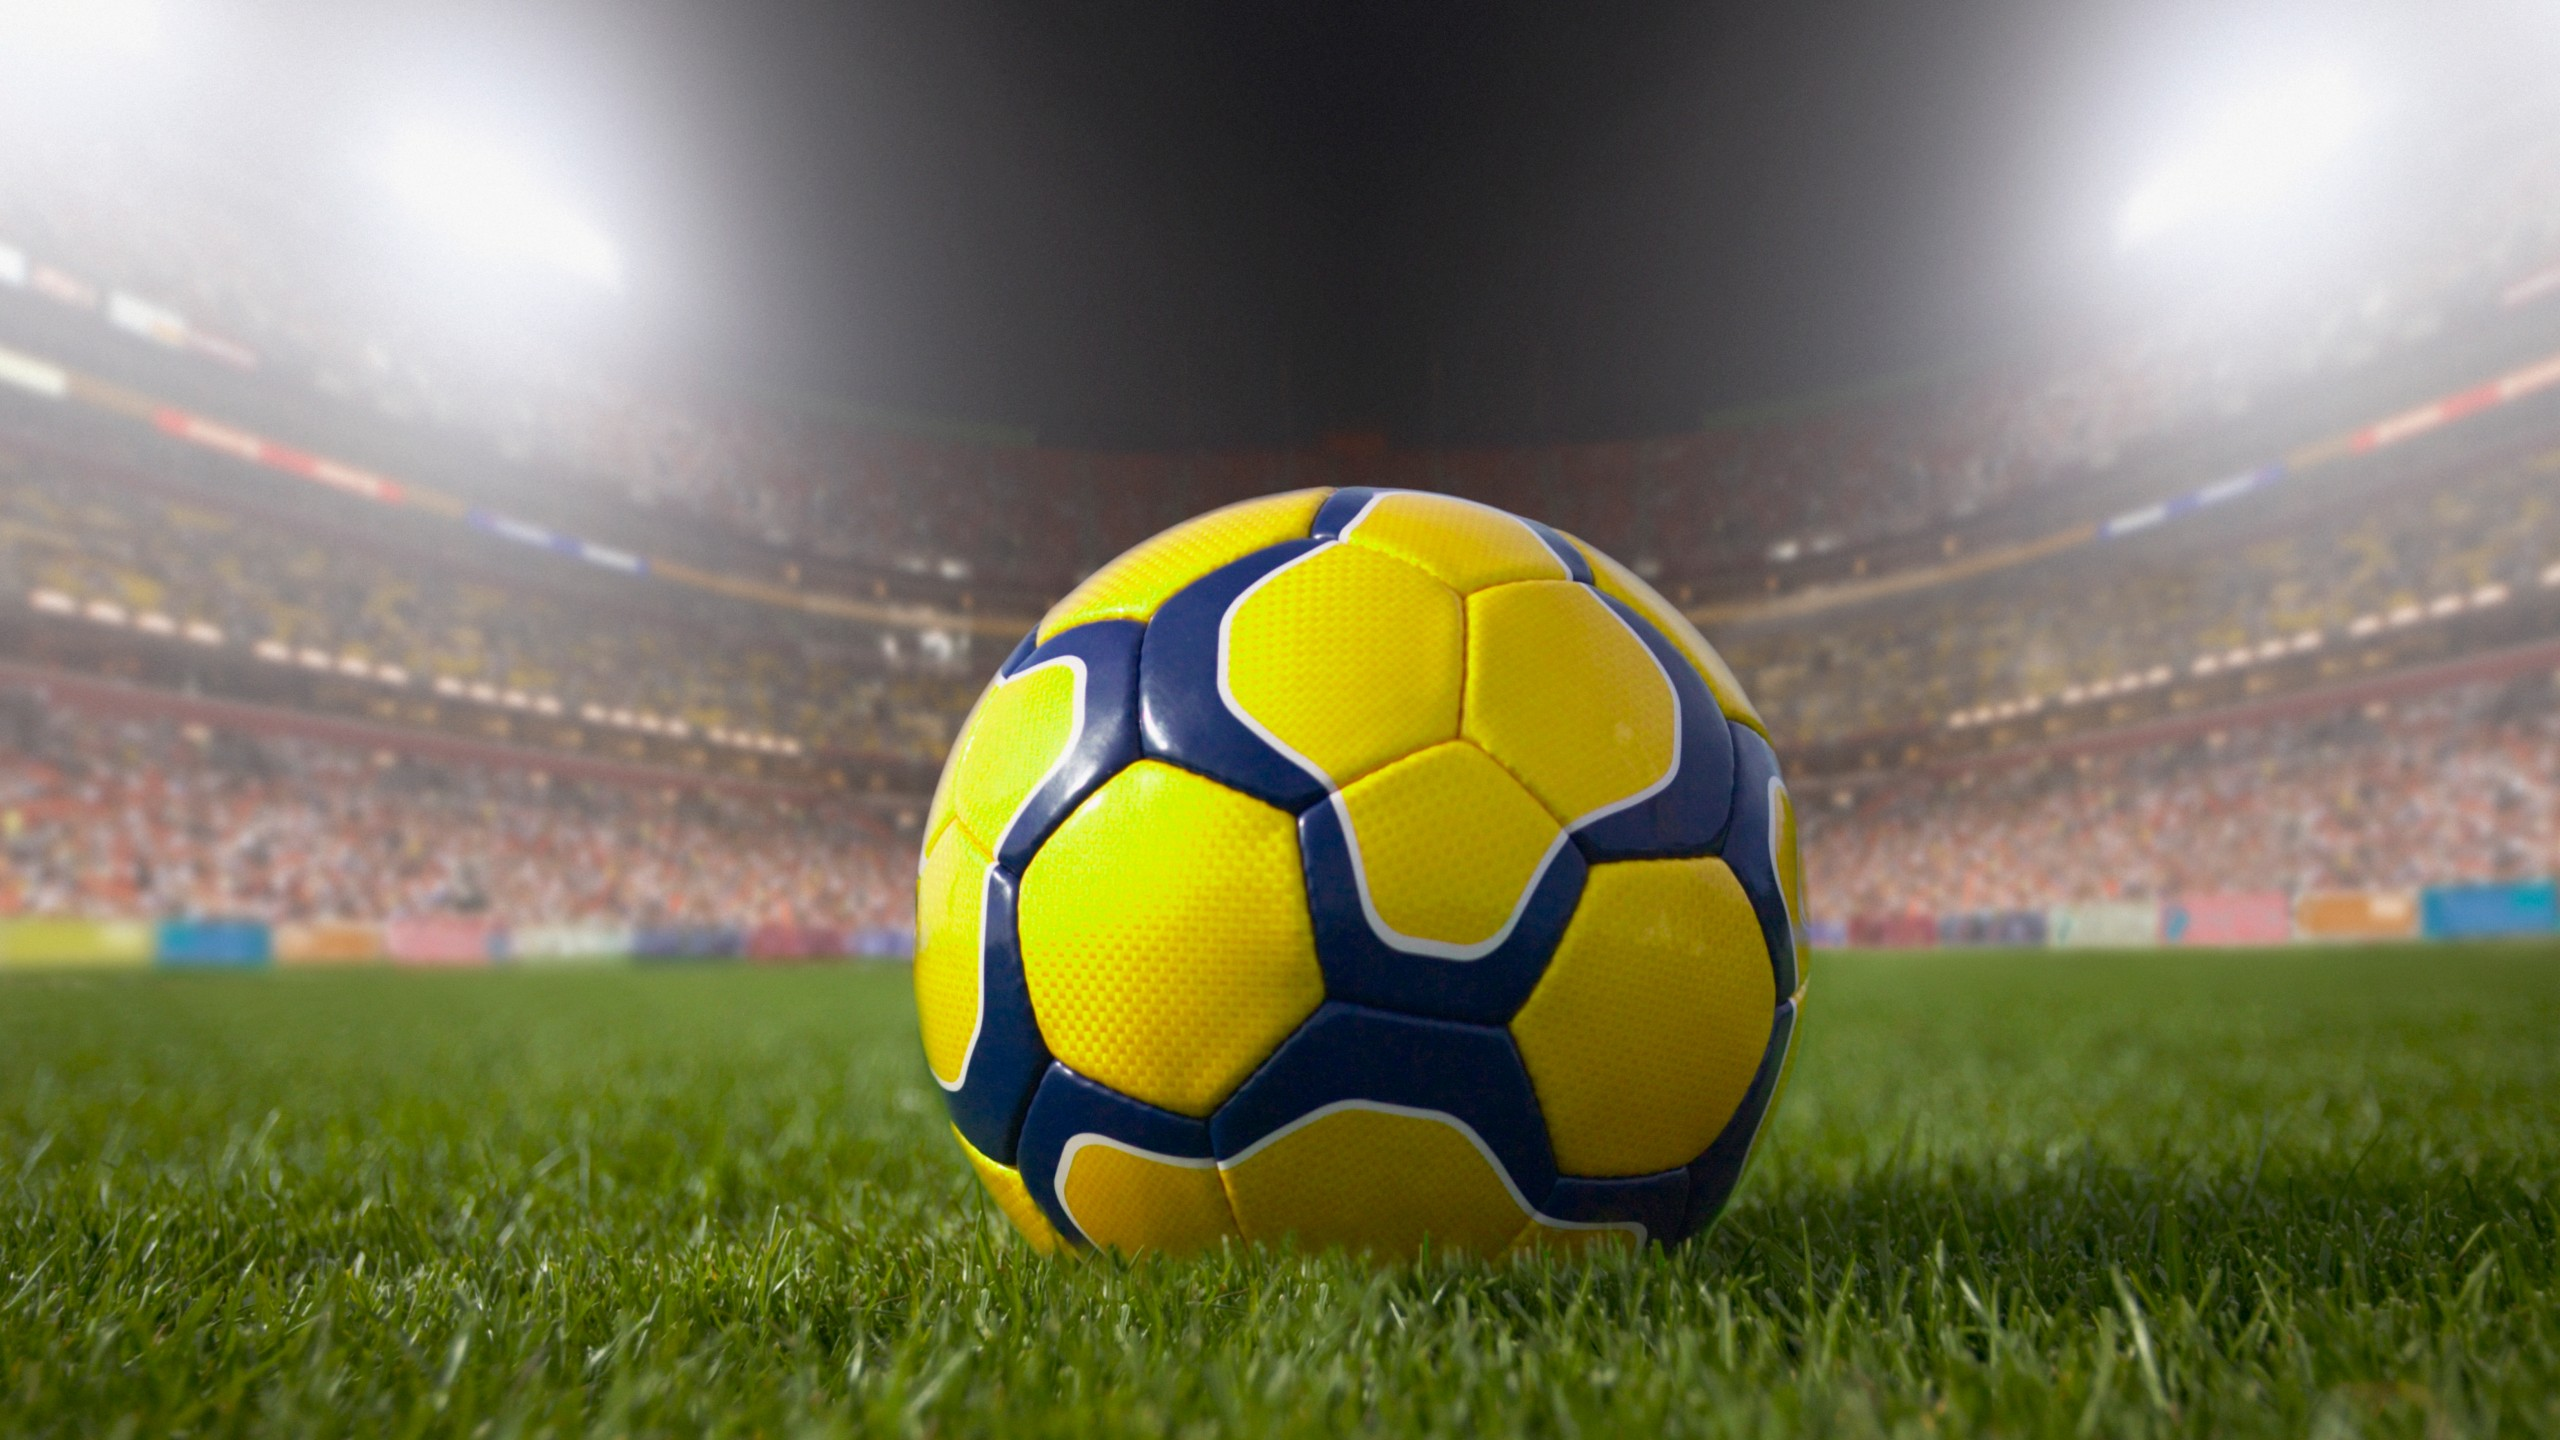 A soccer ball is seen on a field in a stadium in this undated file photo. (Getty Images)